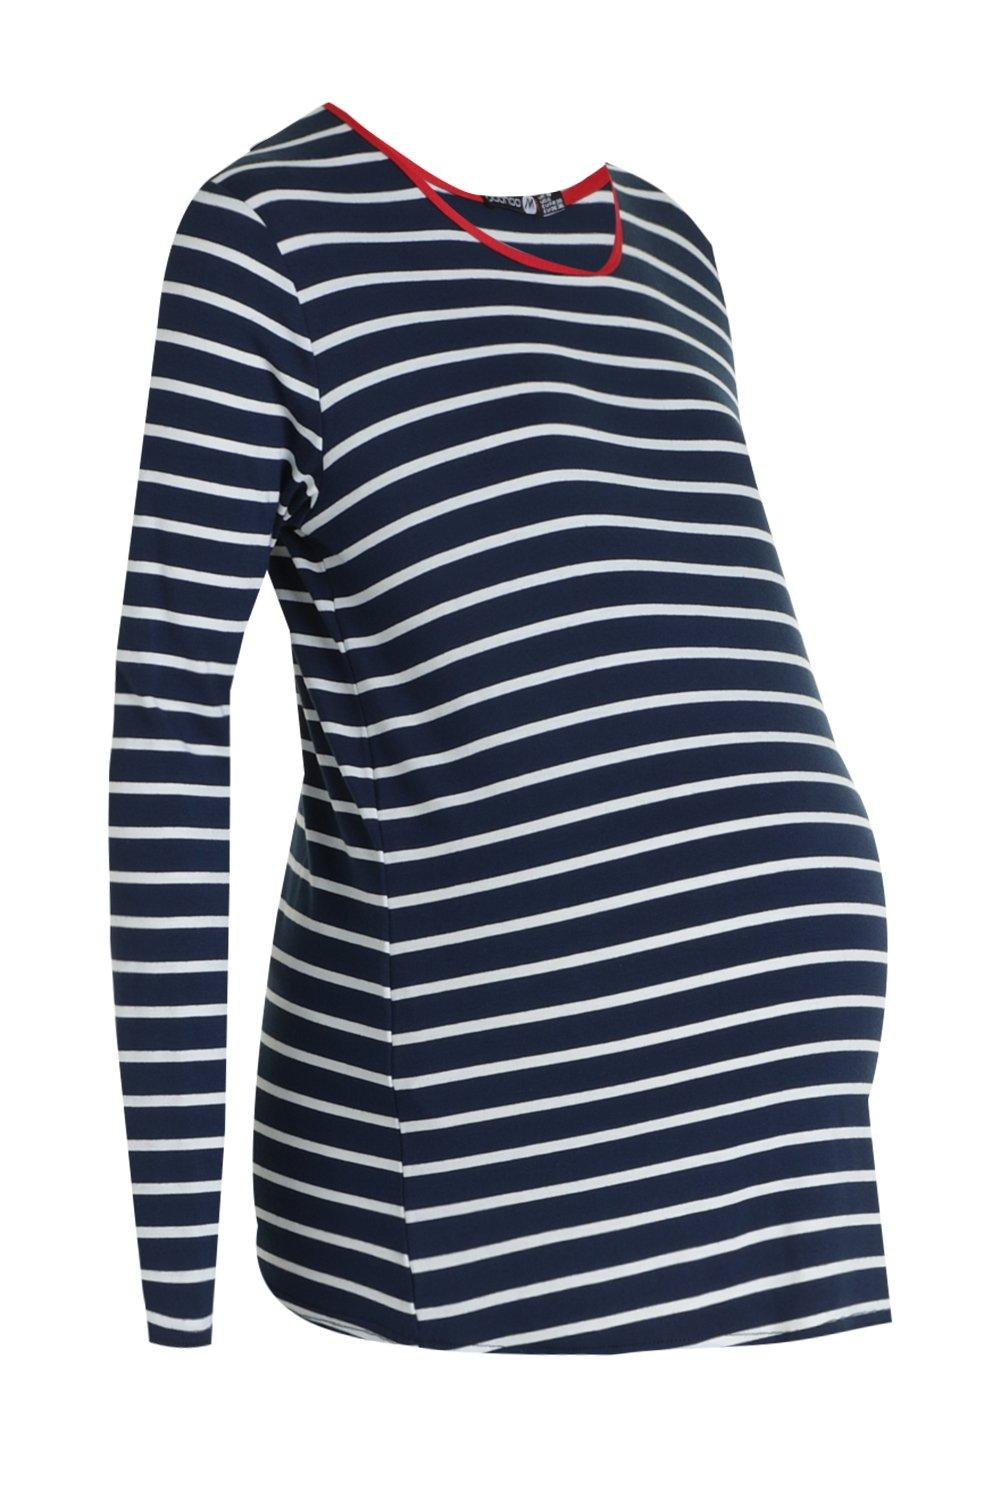 Stripe Top Sleeve navy Long Maternity 6Fwxn6